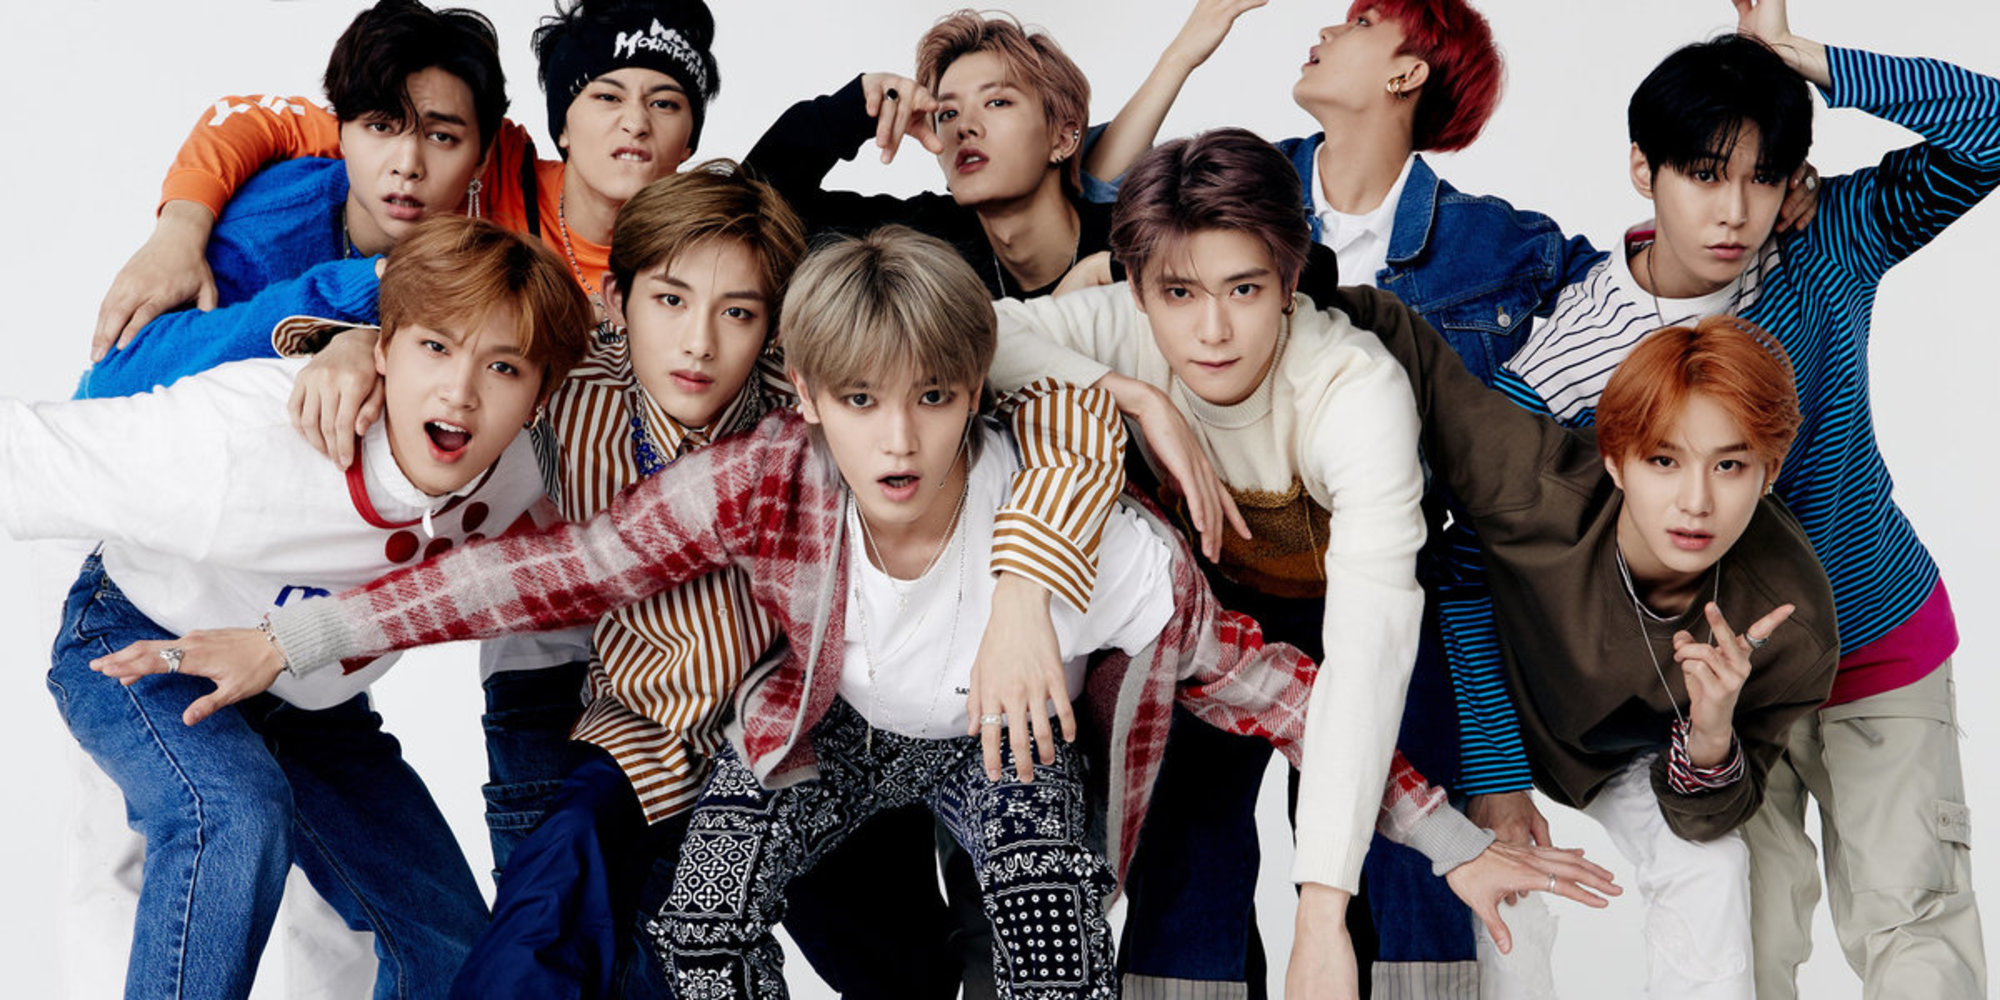 NCT 127 and Ava Max are speculated to have planned a collaboration